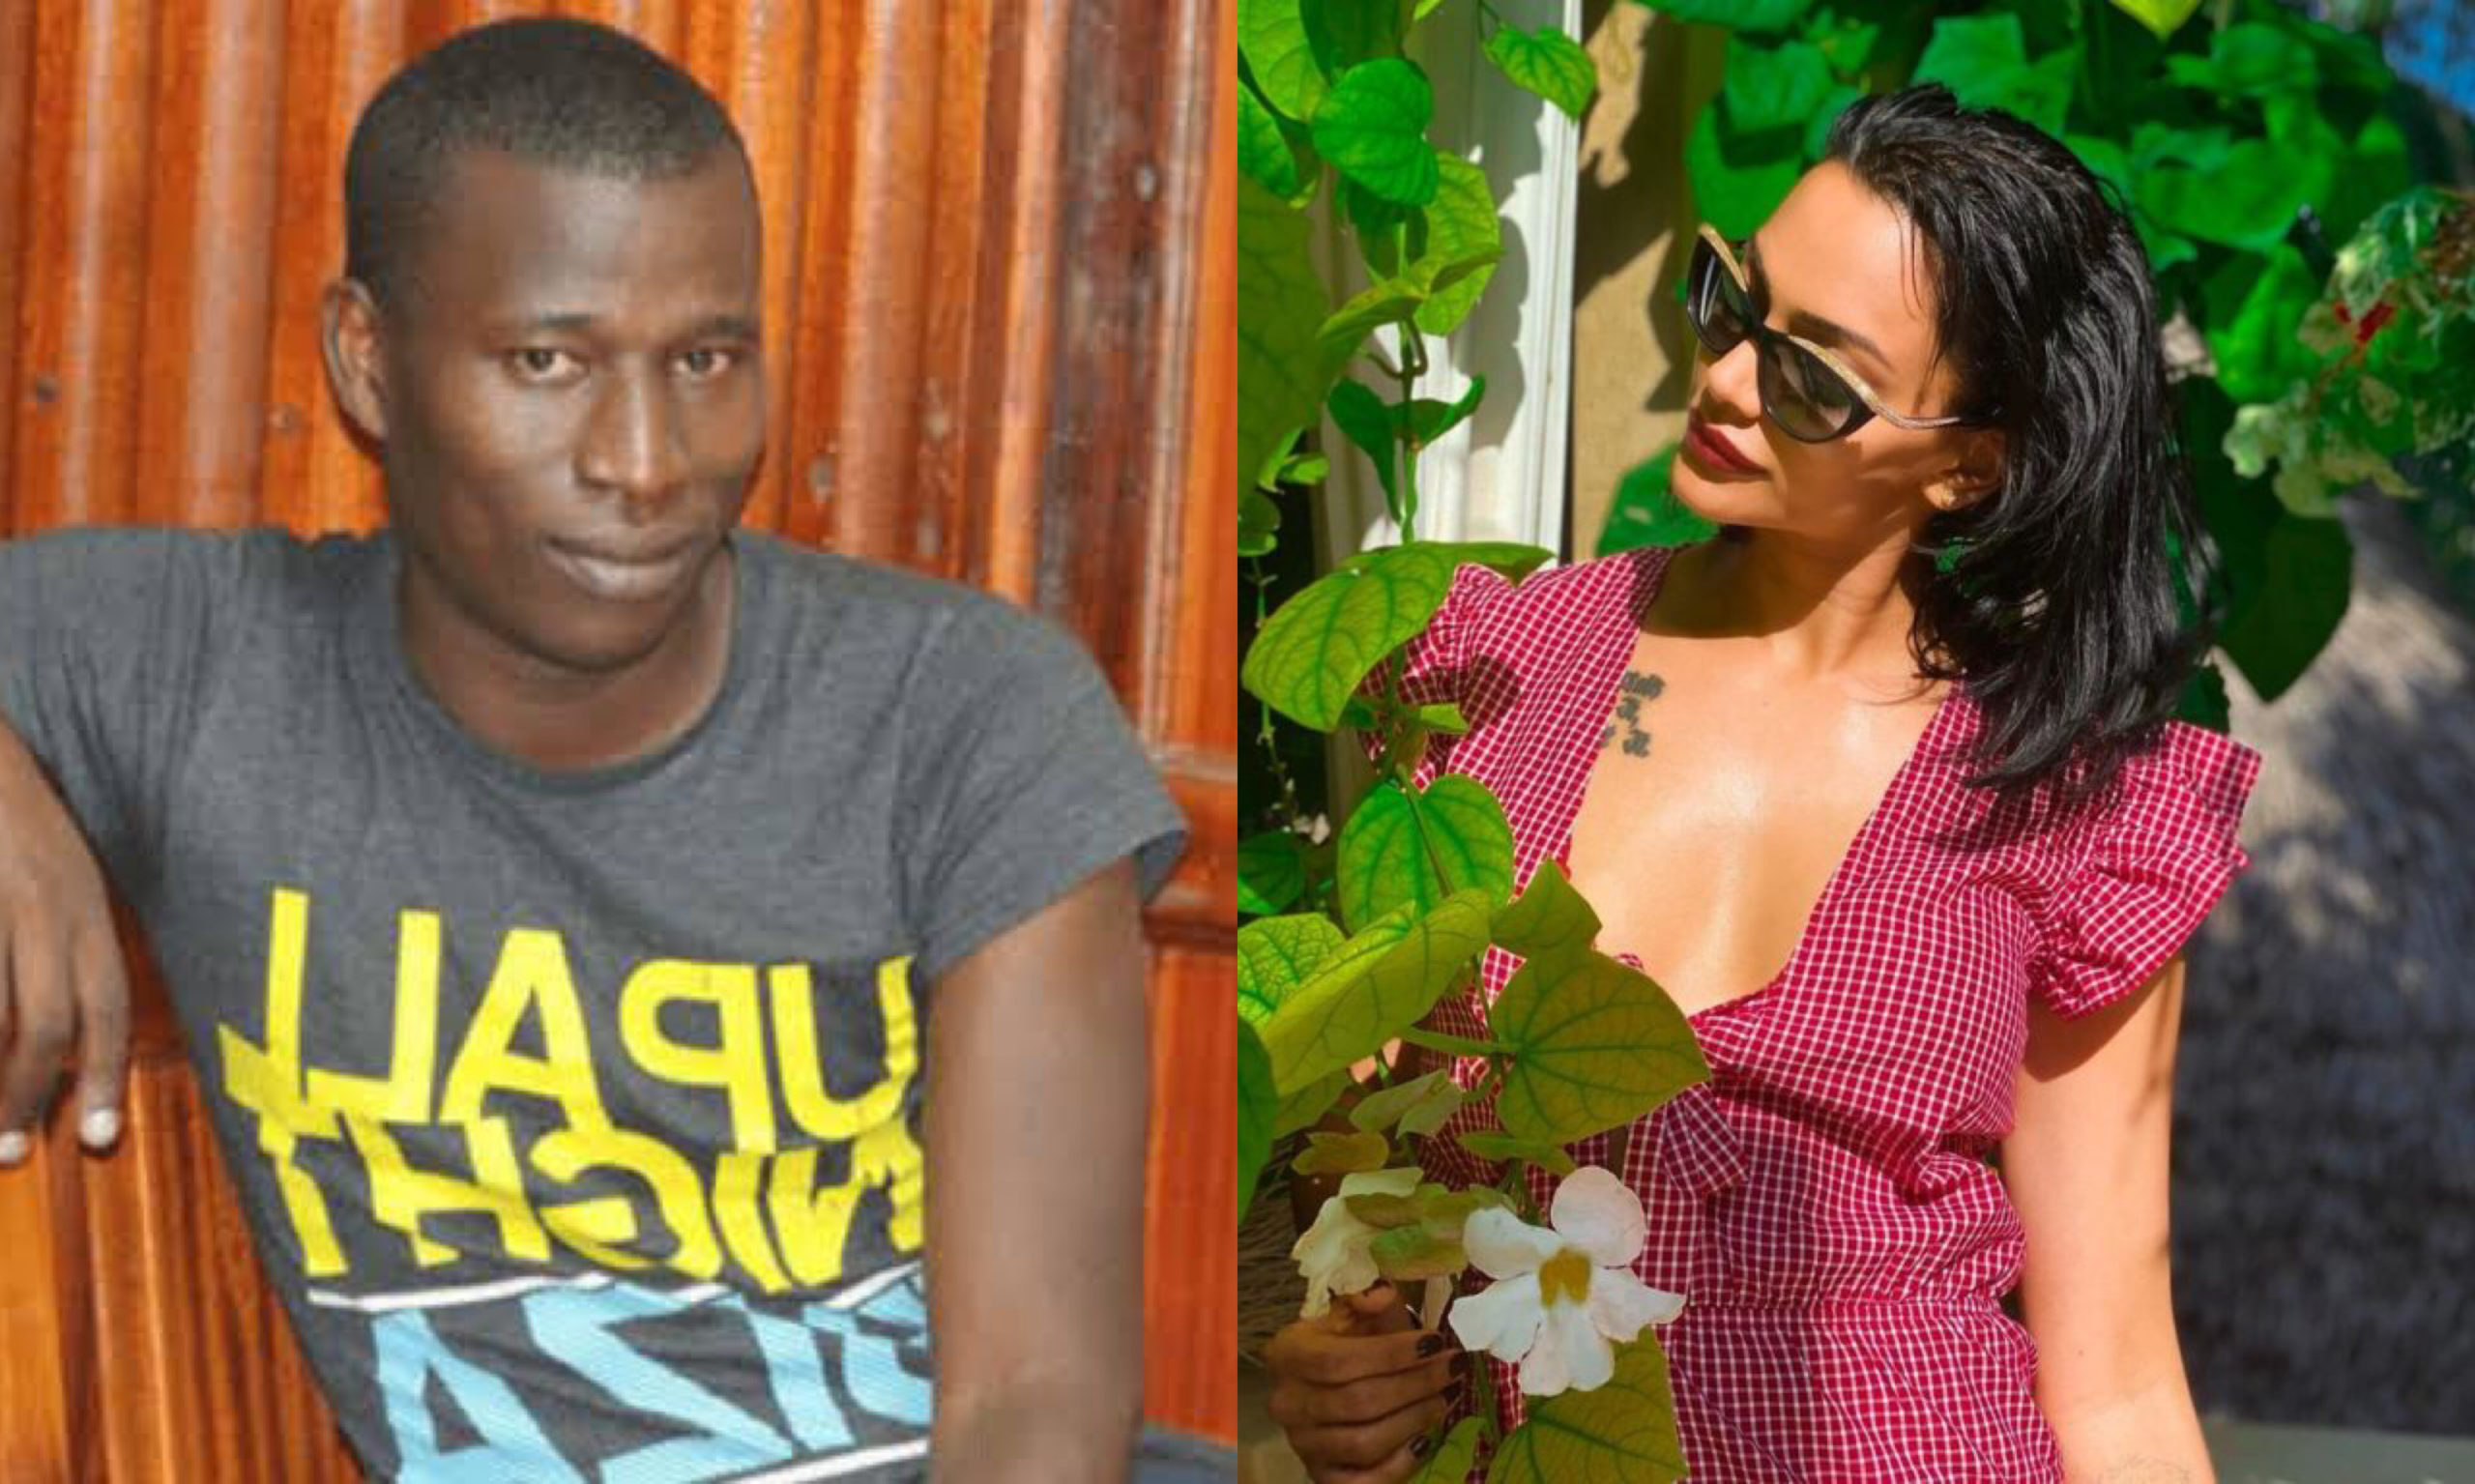 """You should thank me, I made you famous"" Cyprian Nyakundi tells hot lady photographed with Omar Lali"